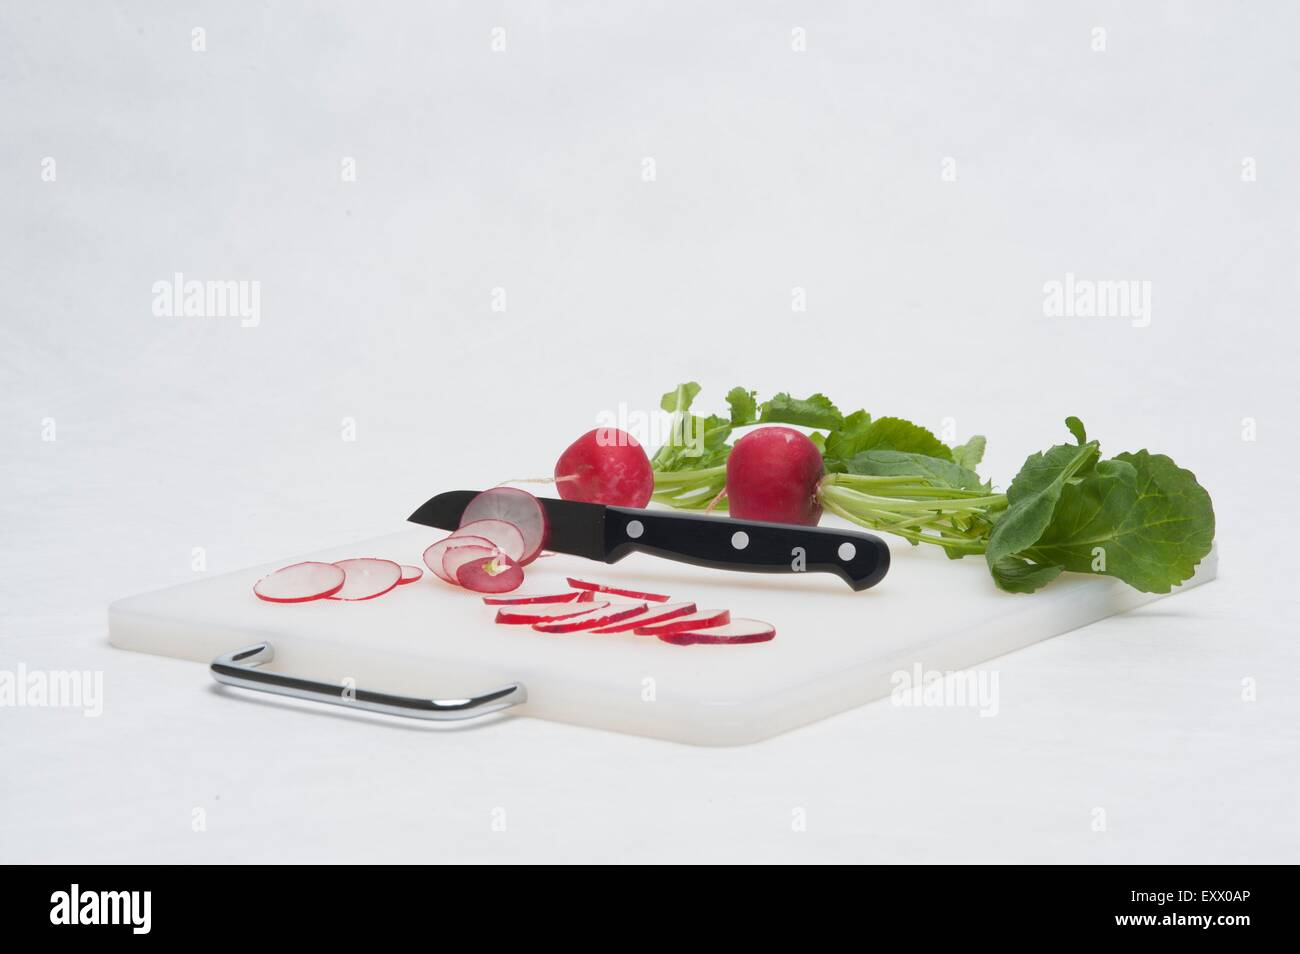 Chopping board with kitchen knife and radish - Stock Image